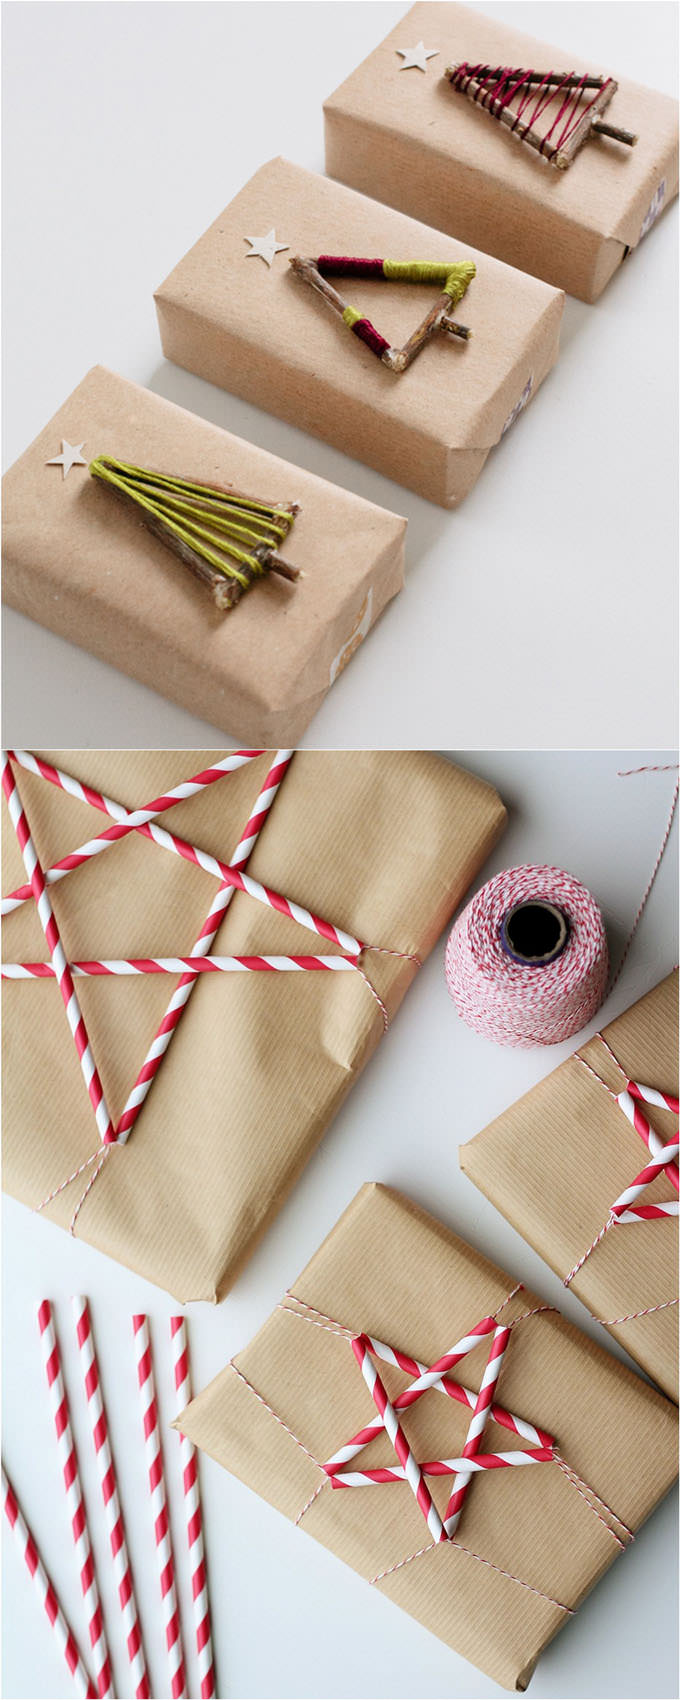 16-gift-wrapping-hacks-apieceofrainbow-3